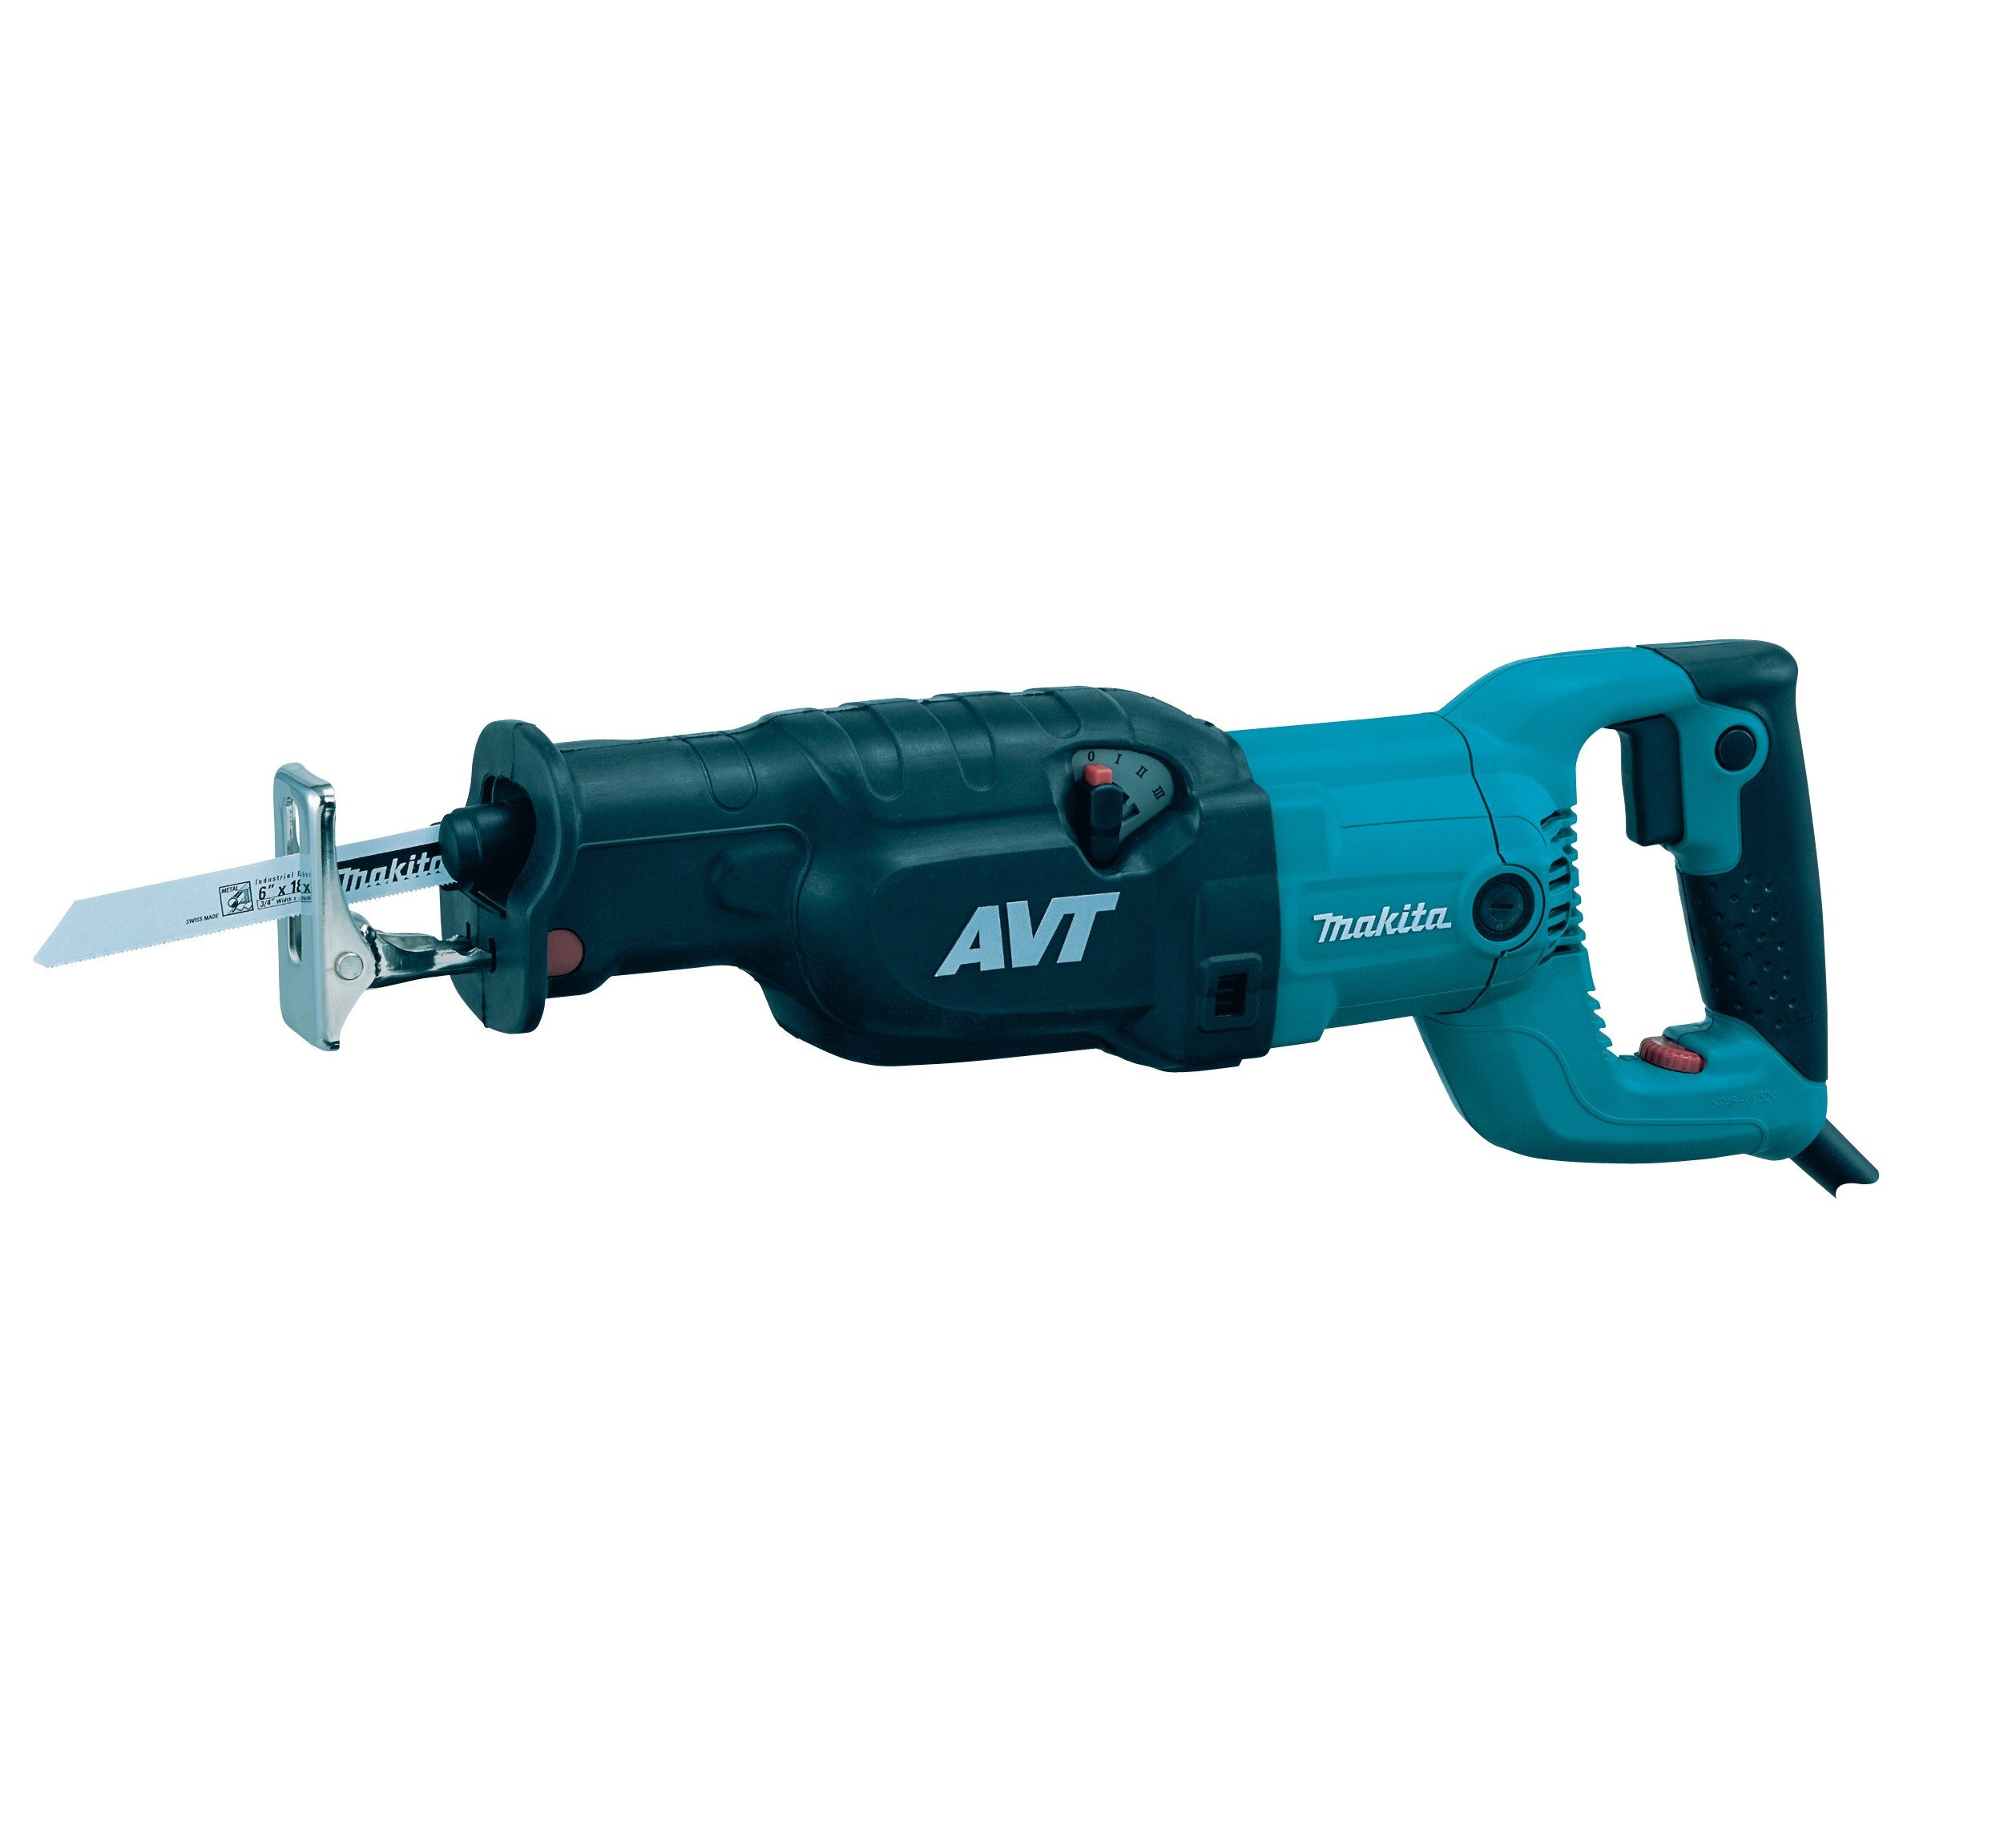 Makita JR3070CT Orbital Action Reciprocating Saw 110v